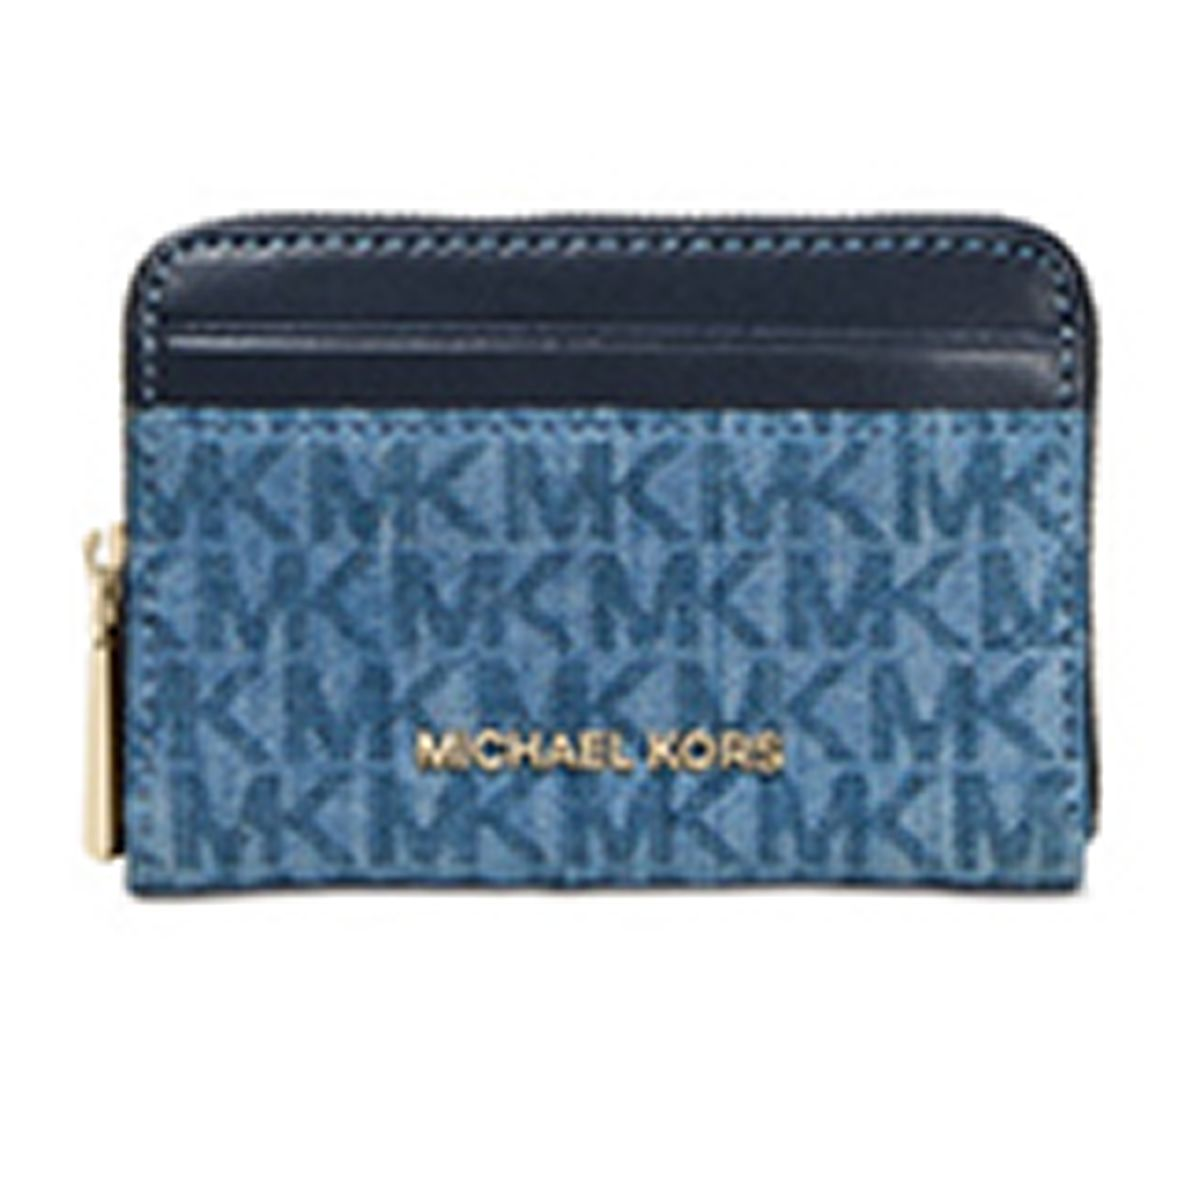 67905b68ee30 Michael Kors Designer Wallets for Women - Macy's